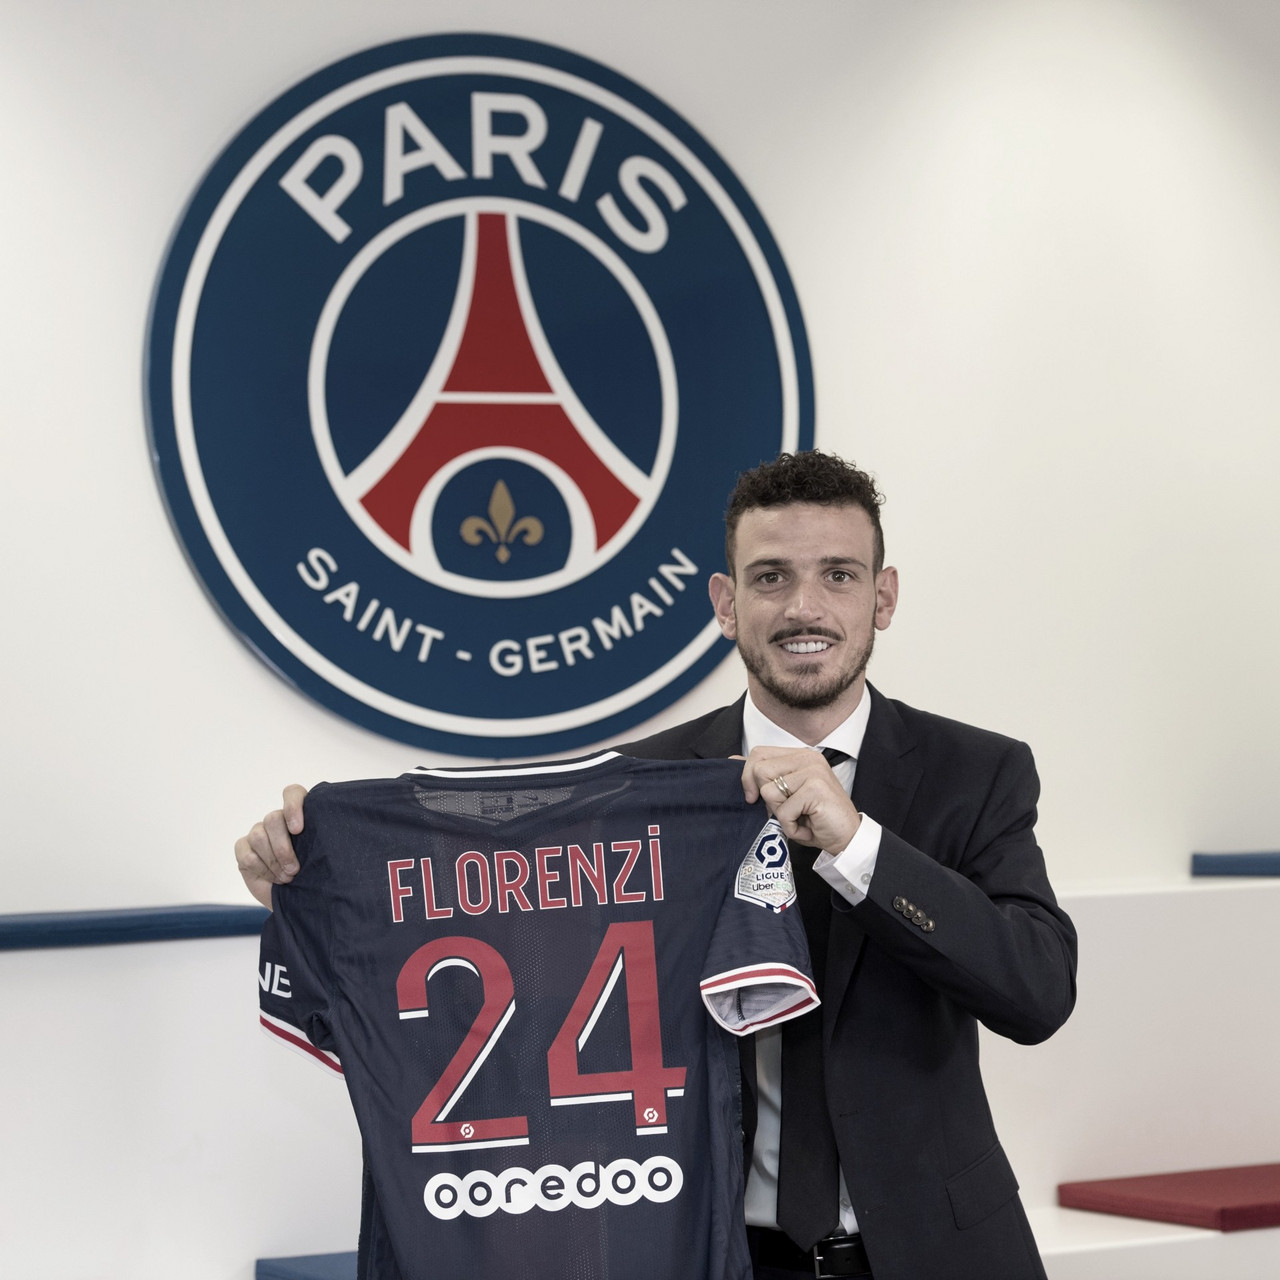 Paris Saint-Germain anuncia lateral Florenzi, ex-Roma